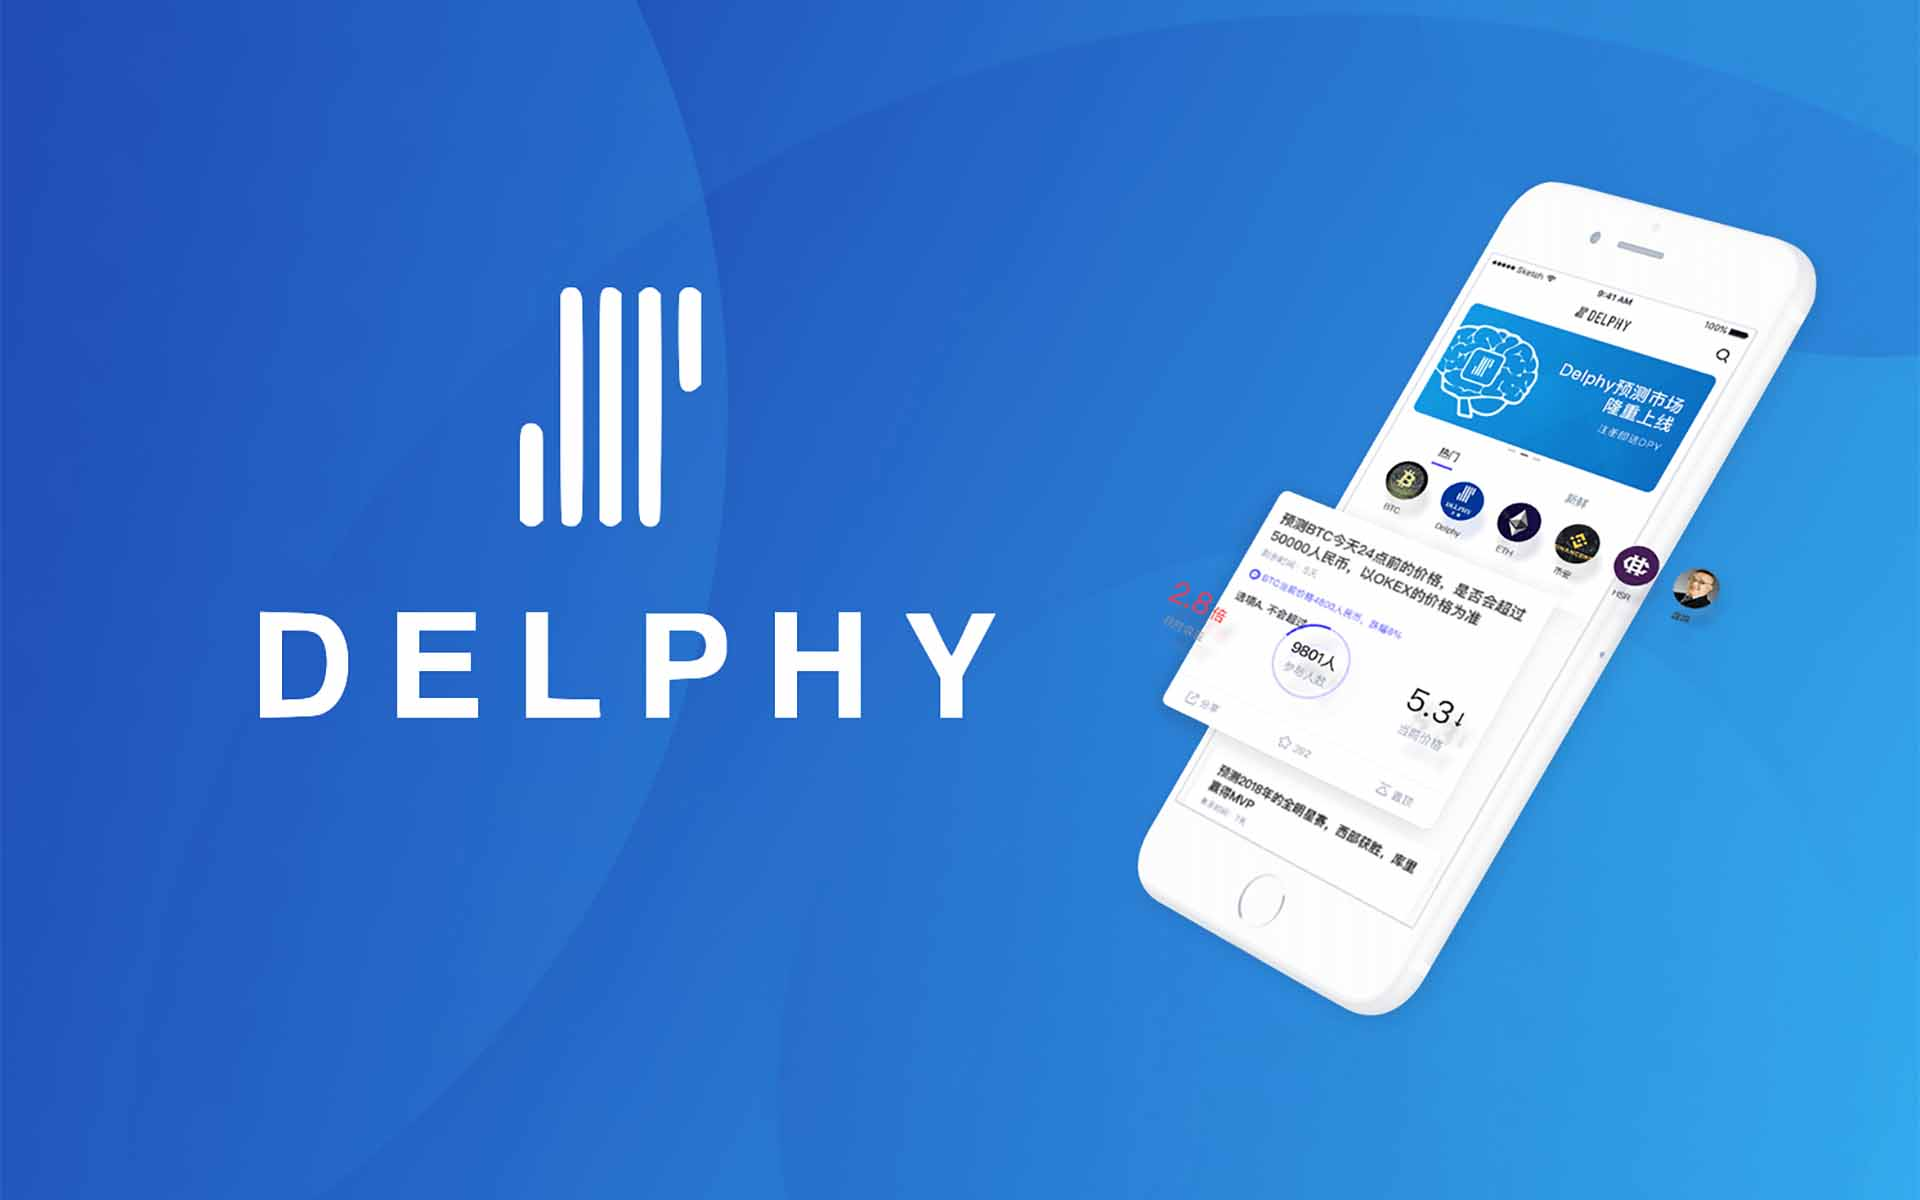 Delphy Surpasses 100,000 Pre-Registration Mark for Its Predictive Markets App